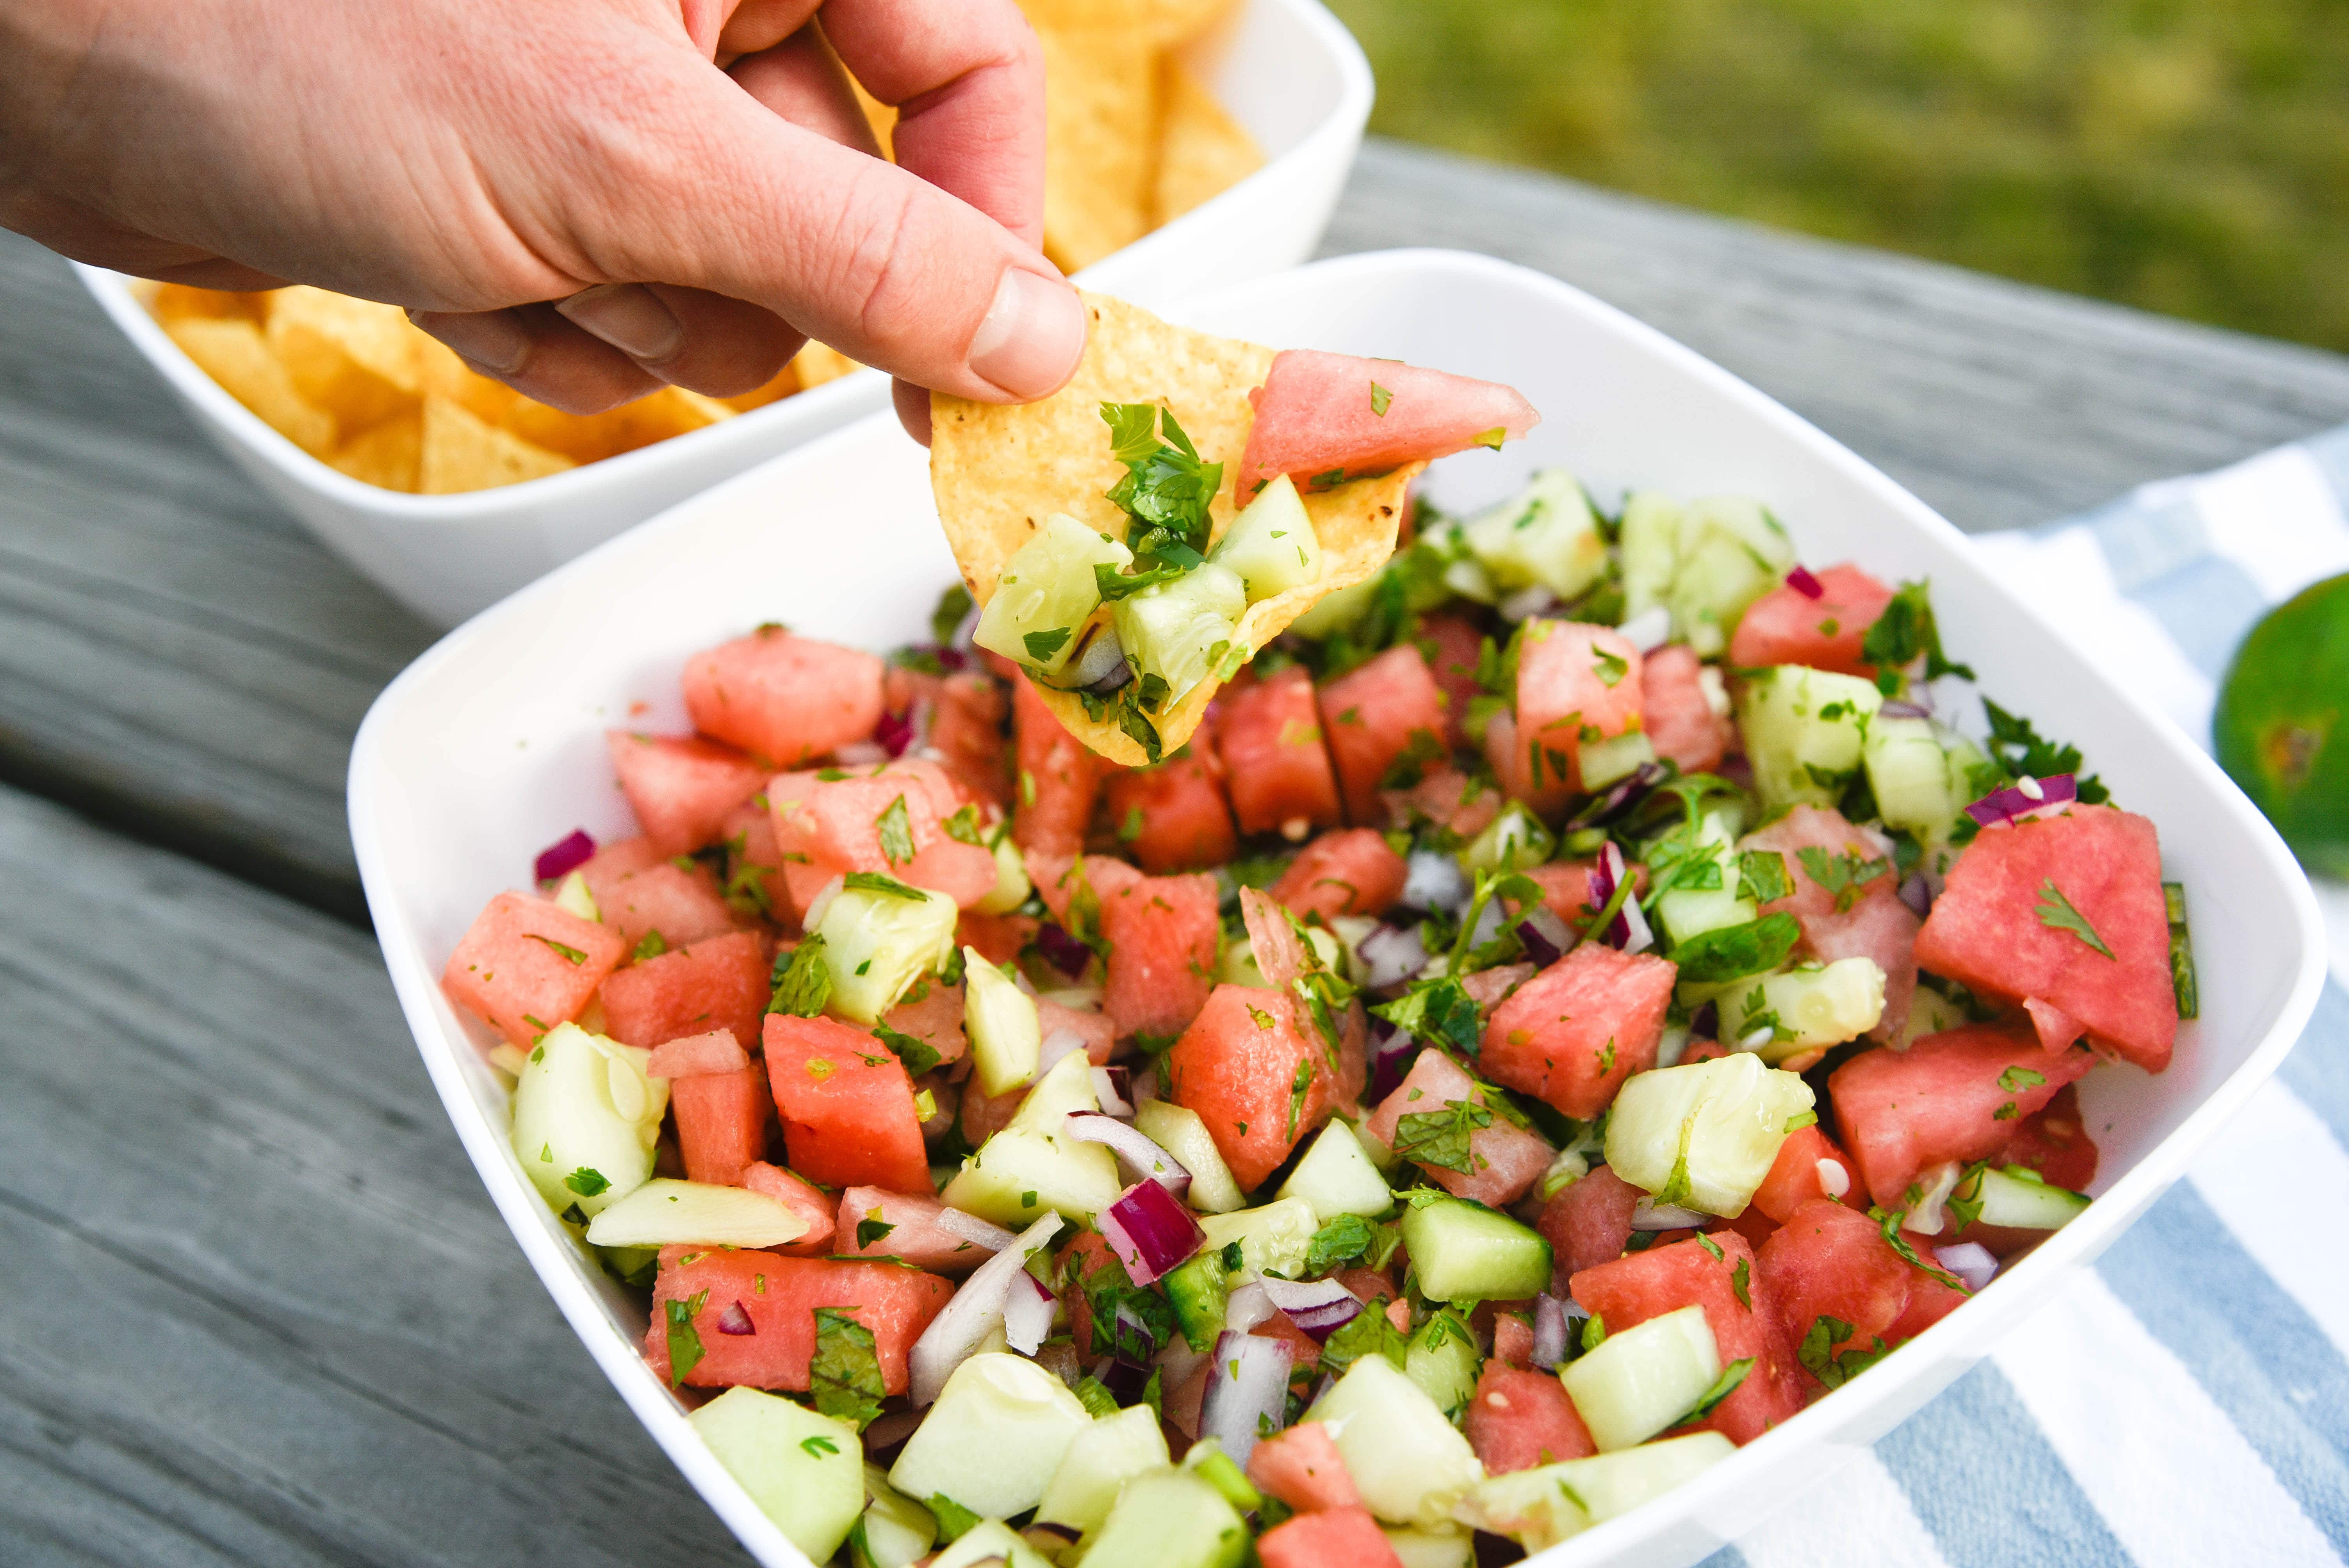 Chip scooping up watermelon salsa